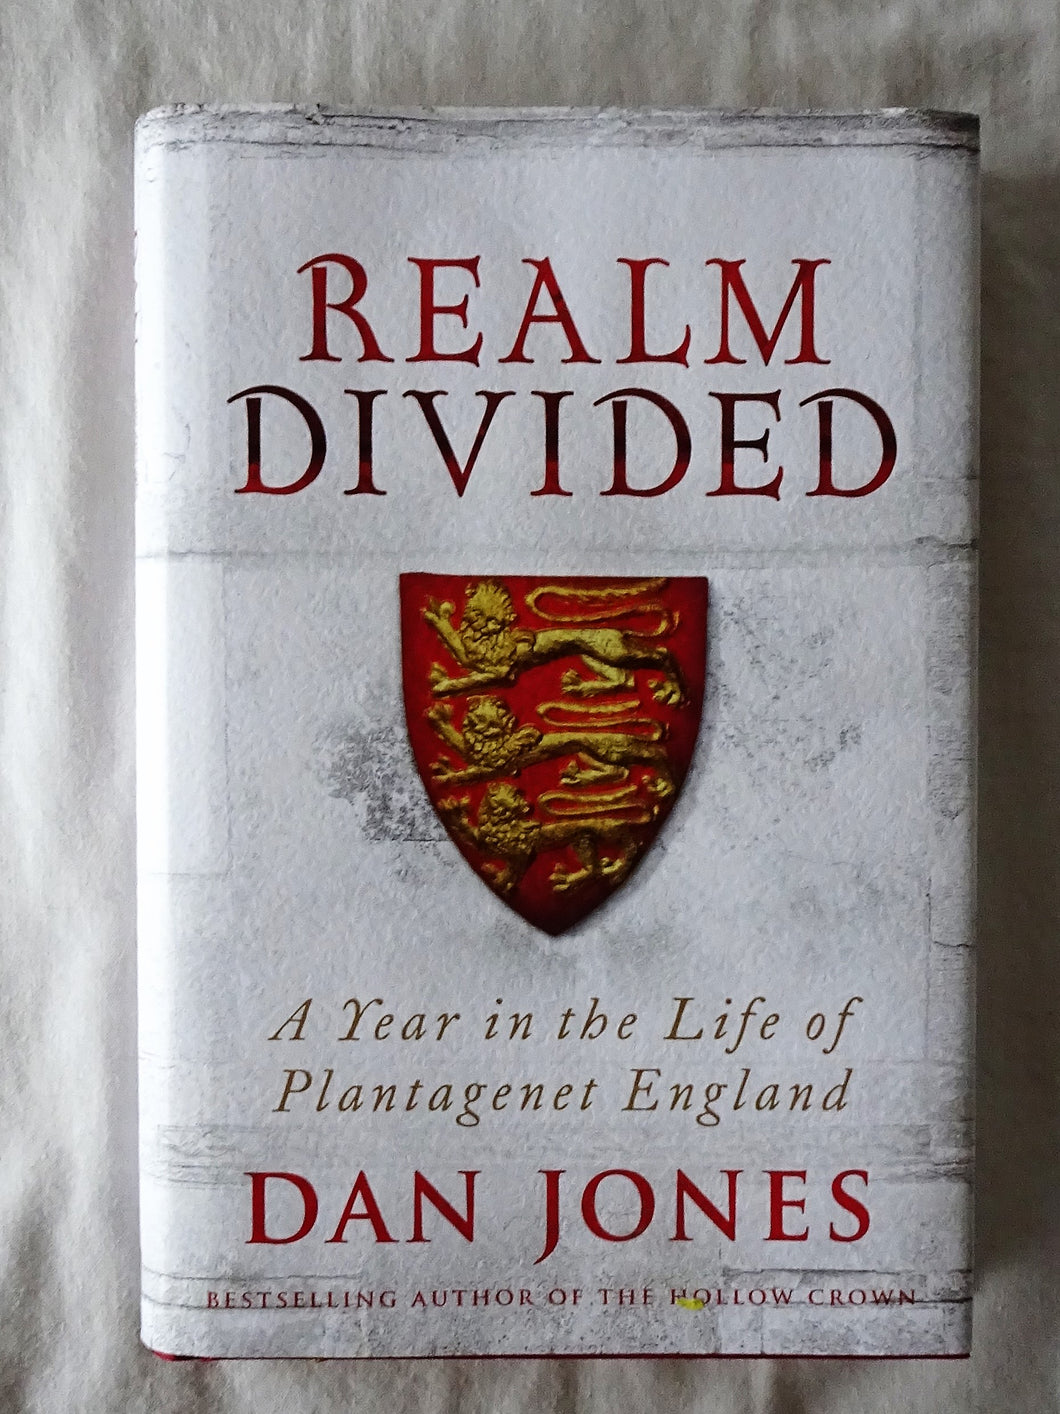 Realm Divided  A Year in the Life of Plantagenet England  by Dan Jones